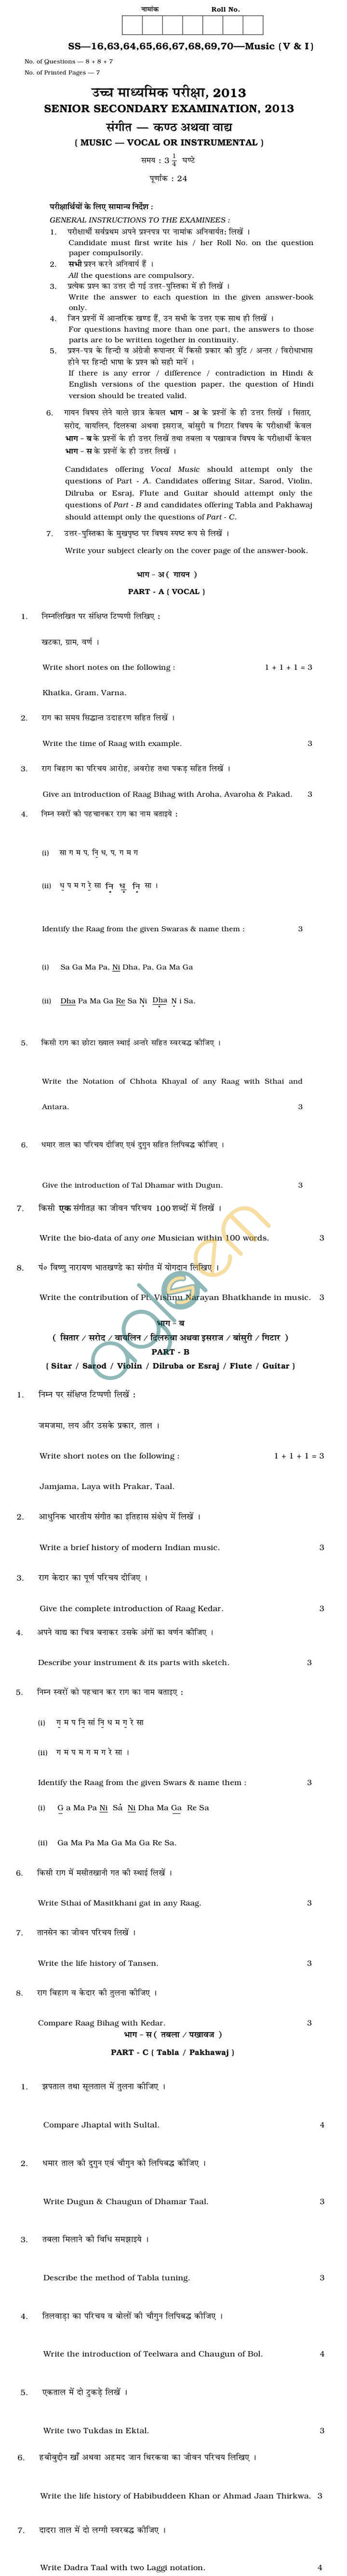 Rajasthan Board Sr. Secondary Secondary -Music (VI) Question Paper 2013